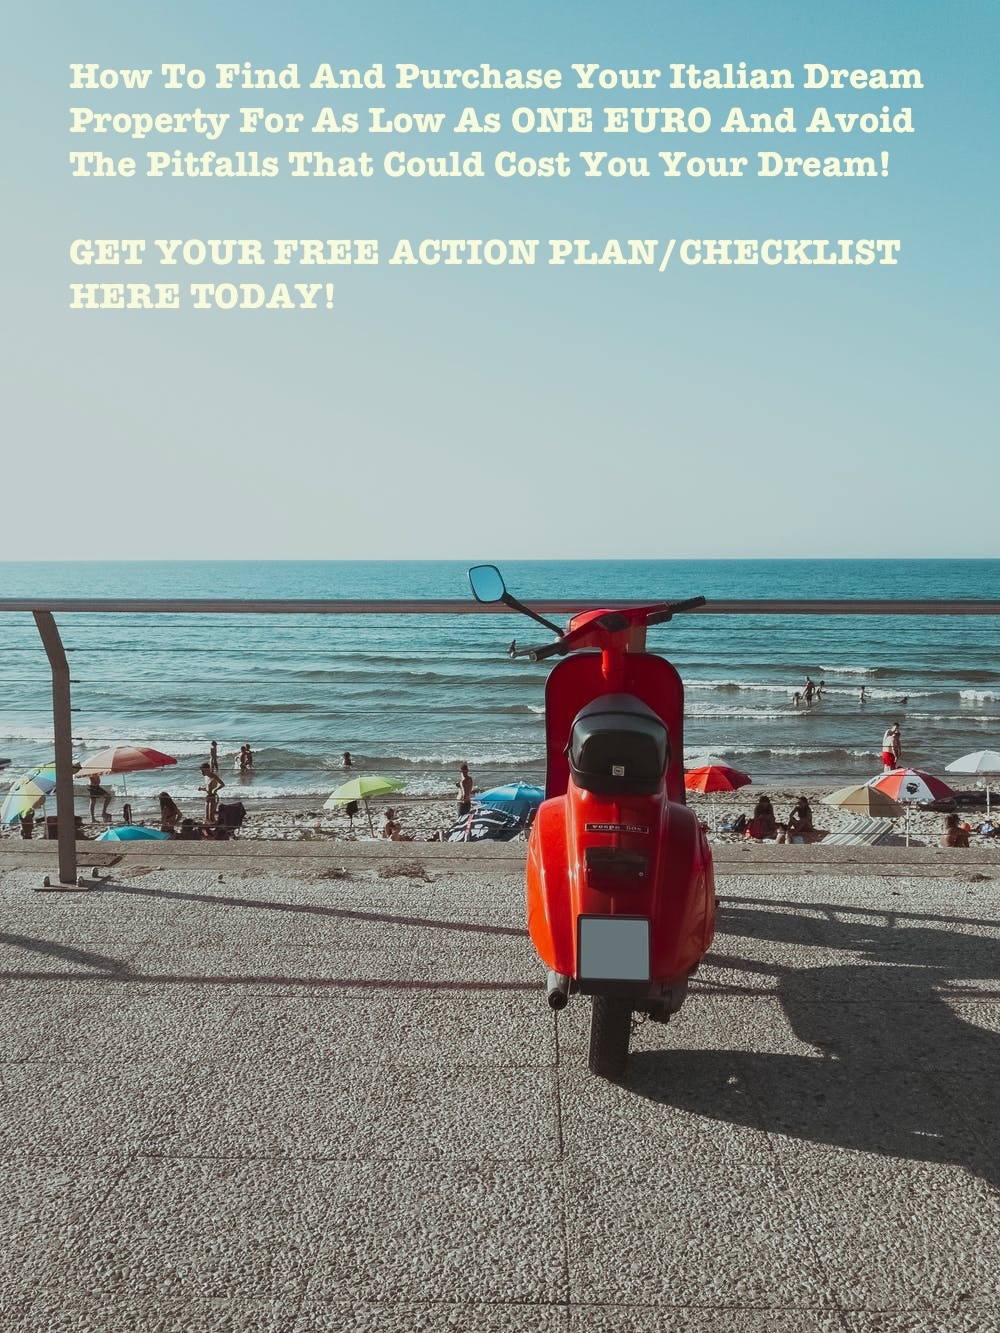 Free Action Plan/Checklist